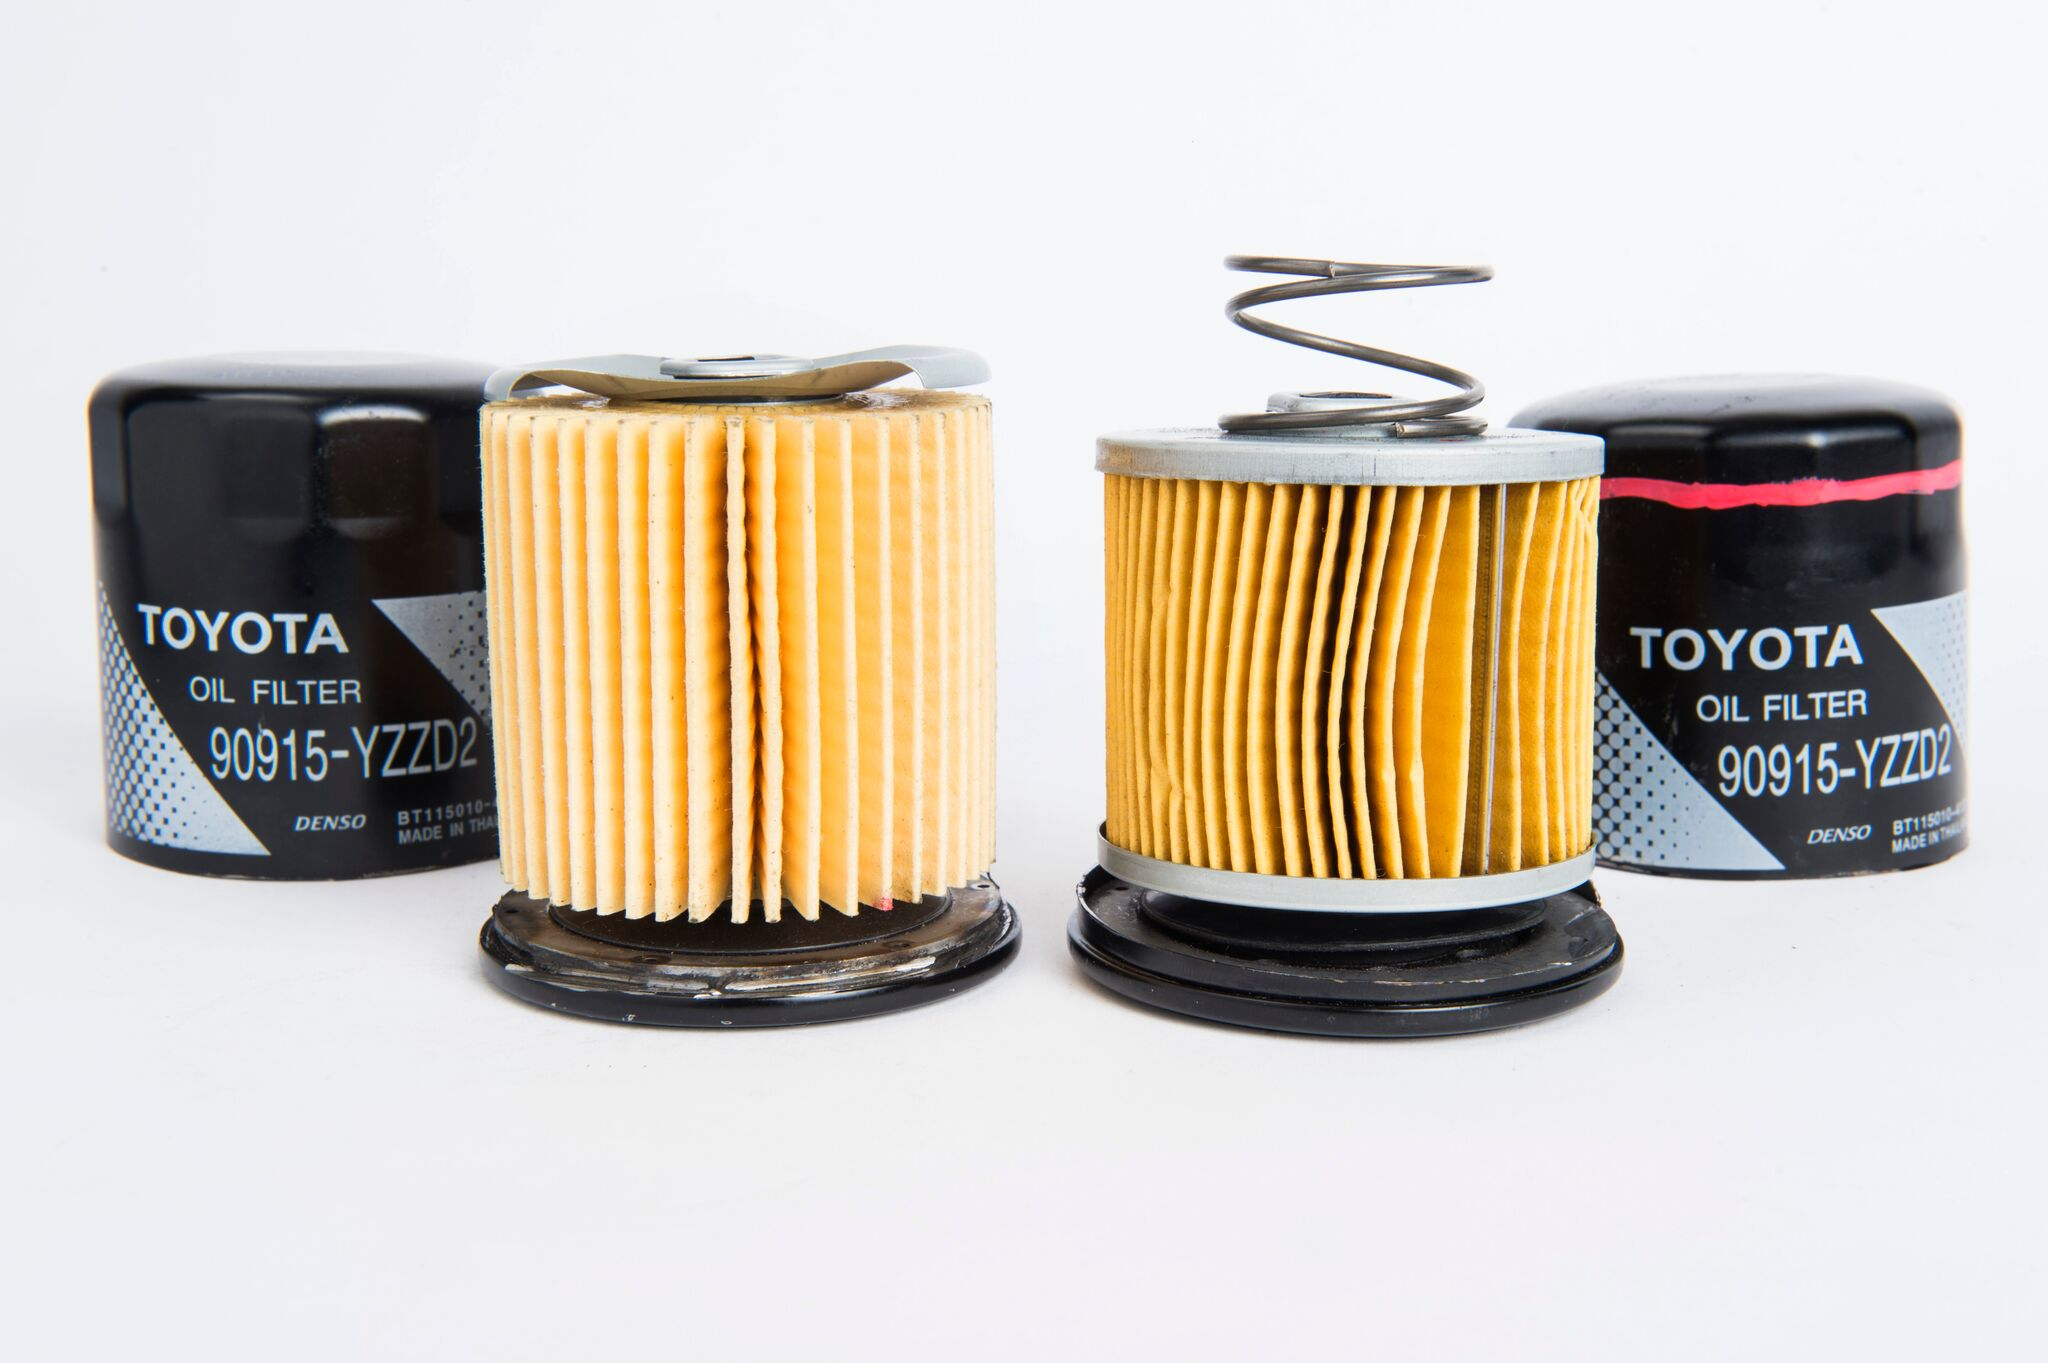 BUSTED: Counterfeit Oil Filters Seized